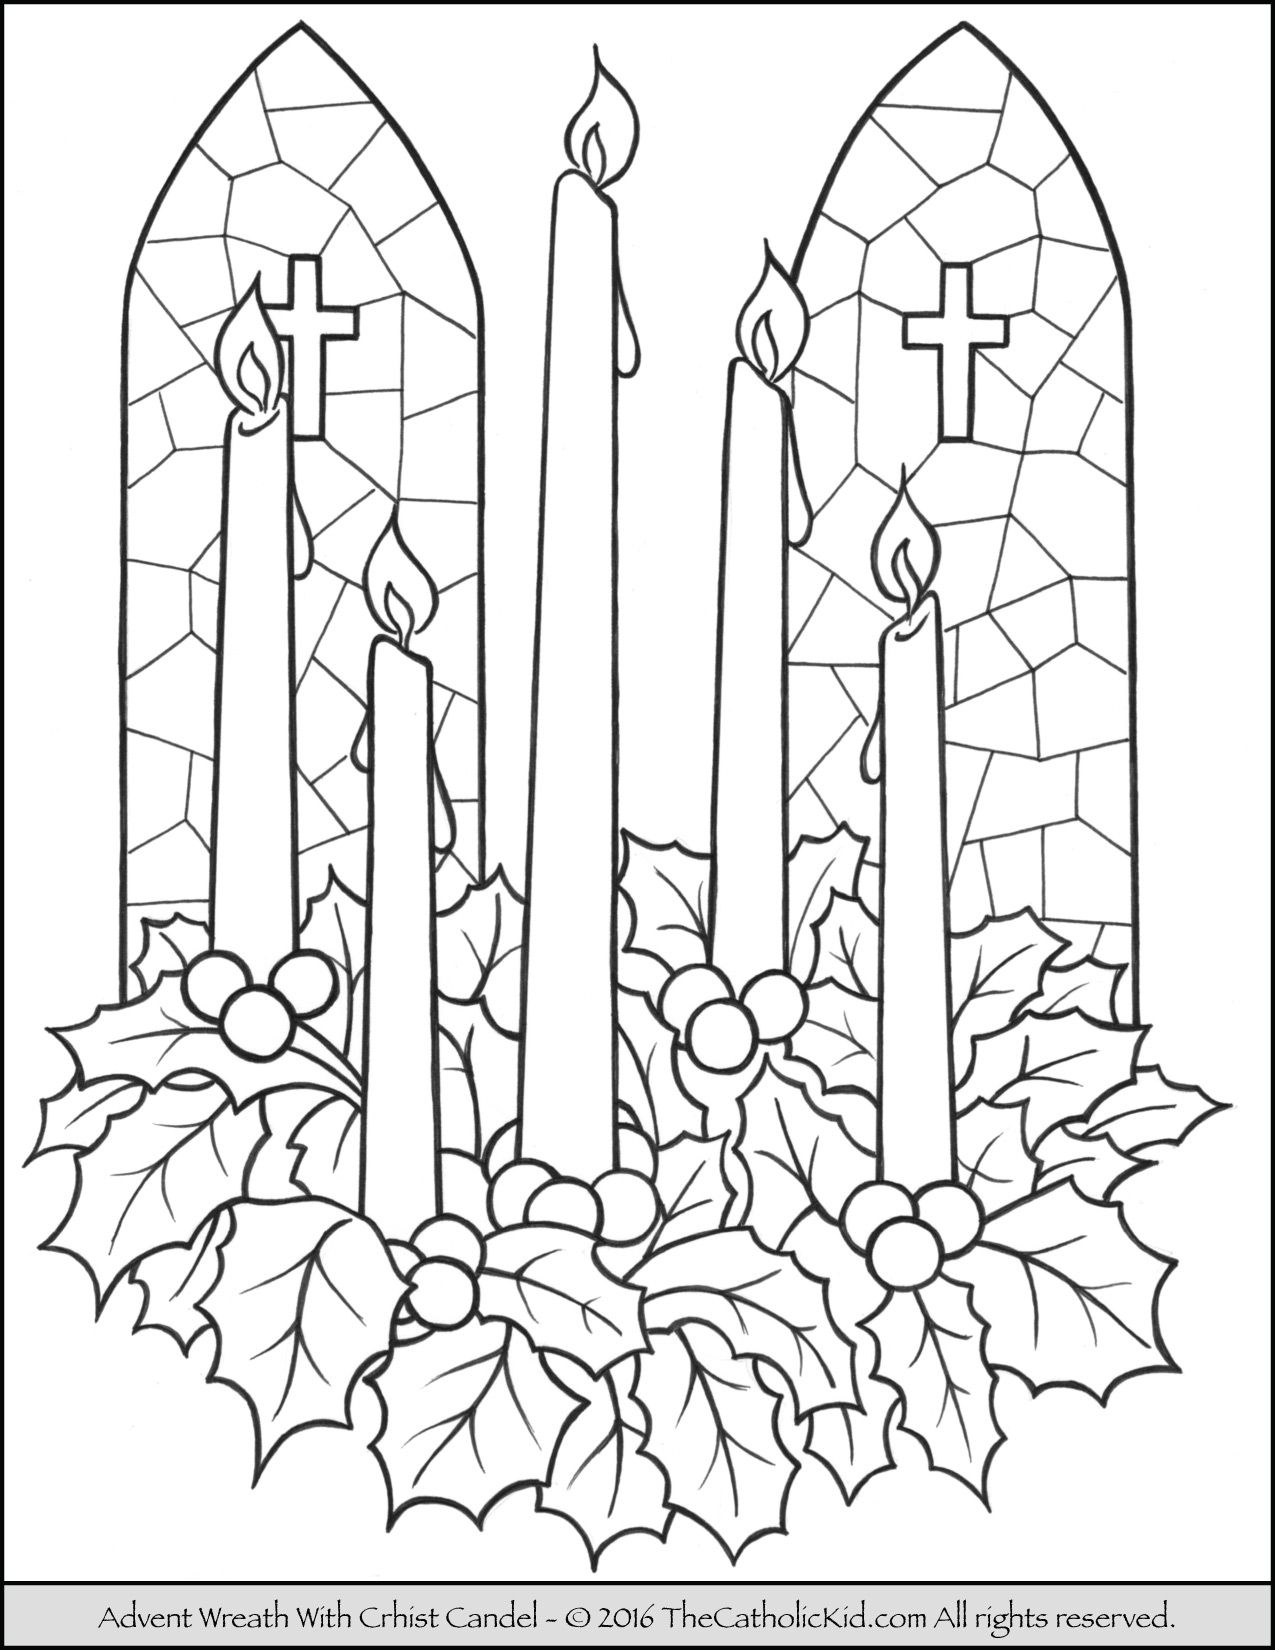 Advent Wreath Christ Candle Coloring Page Advent Coloring Christmas Coloring Pages Christmas Coloring Books